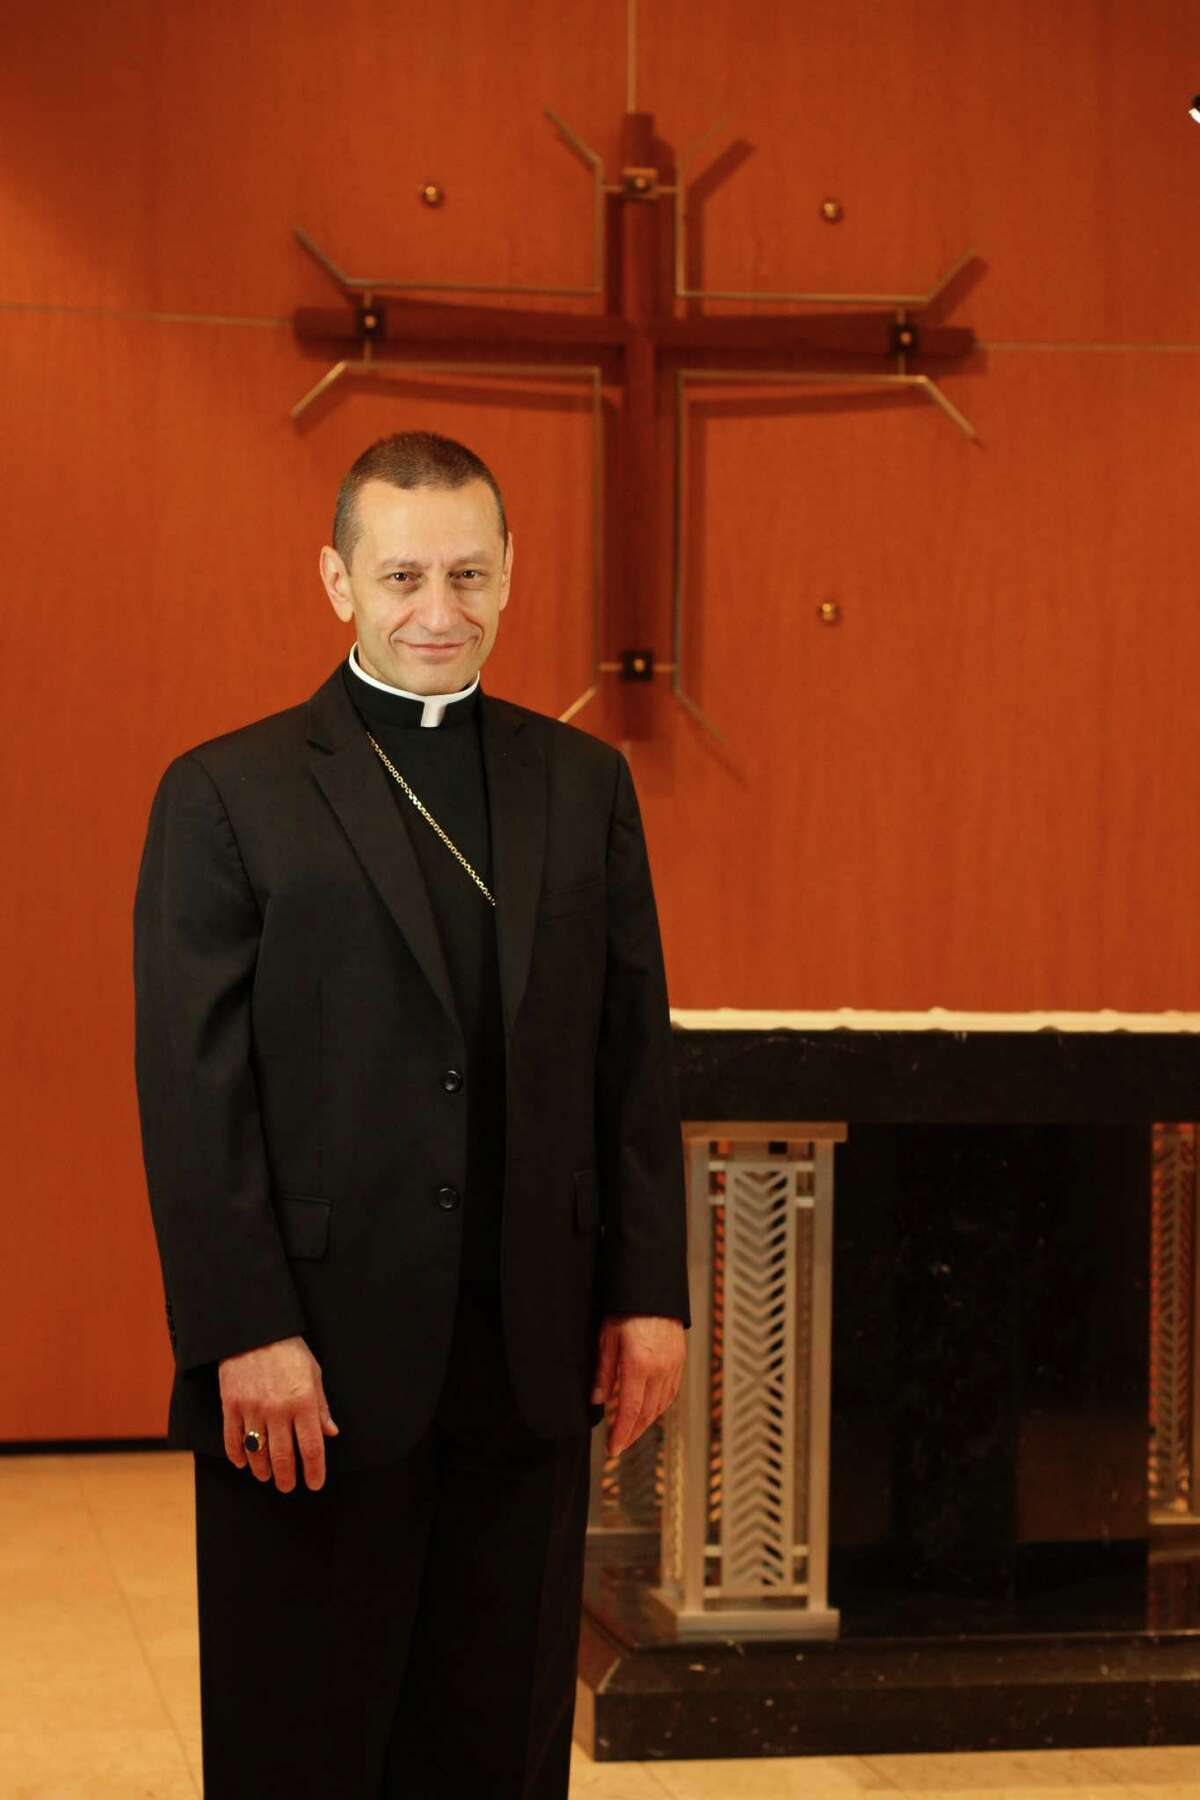 Auxiliary Bishop Frank J. Caggiano of the Roman Catholic Diocese of Brooklyn, poses at diocesan headquarters in Brooklyn, NY on Thursday Aug. 1, 2013. Bishop Caggiano will be installed as the bishop of the Diocese of Bridgeport, Conn., on Sept. 19, 2013.